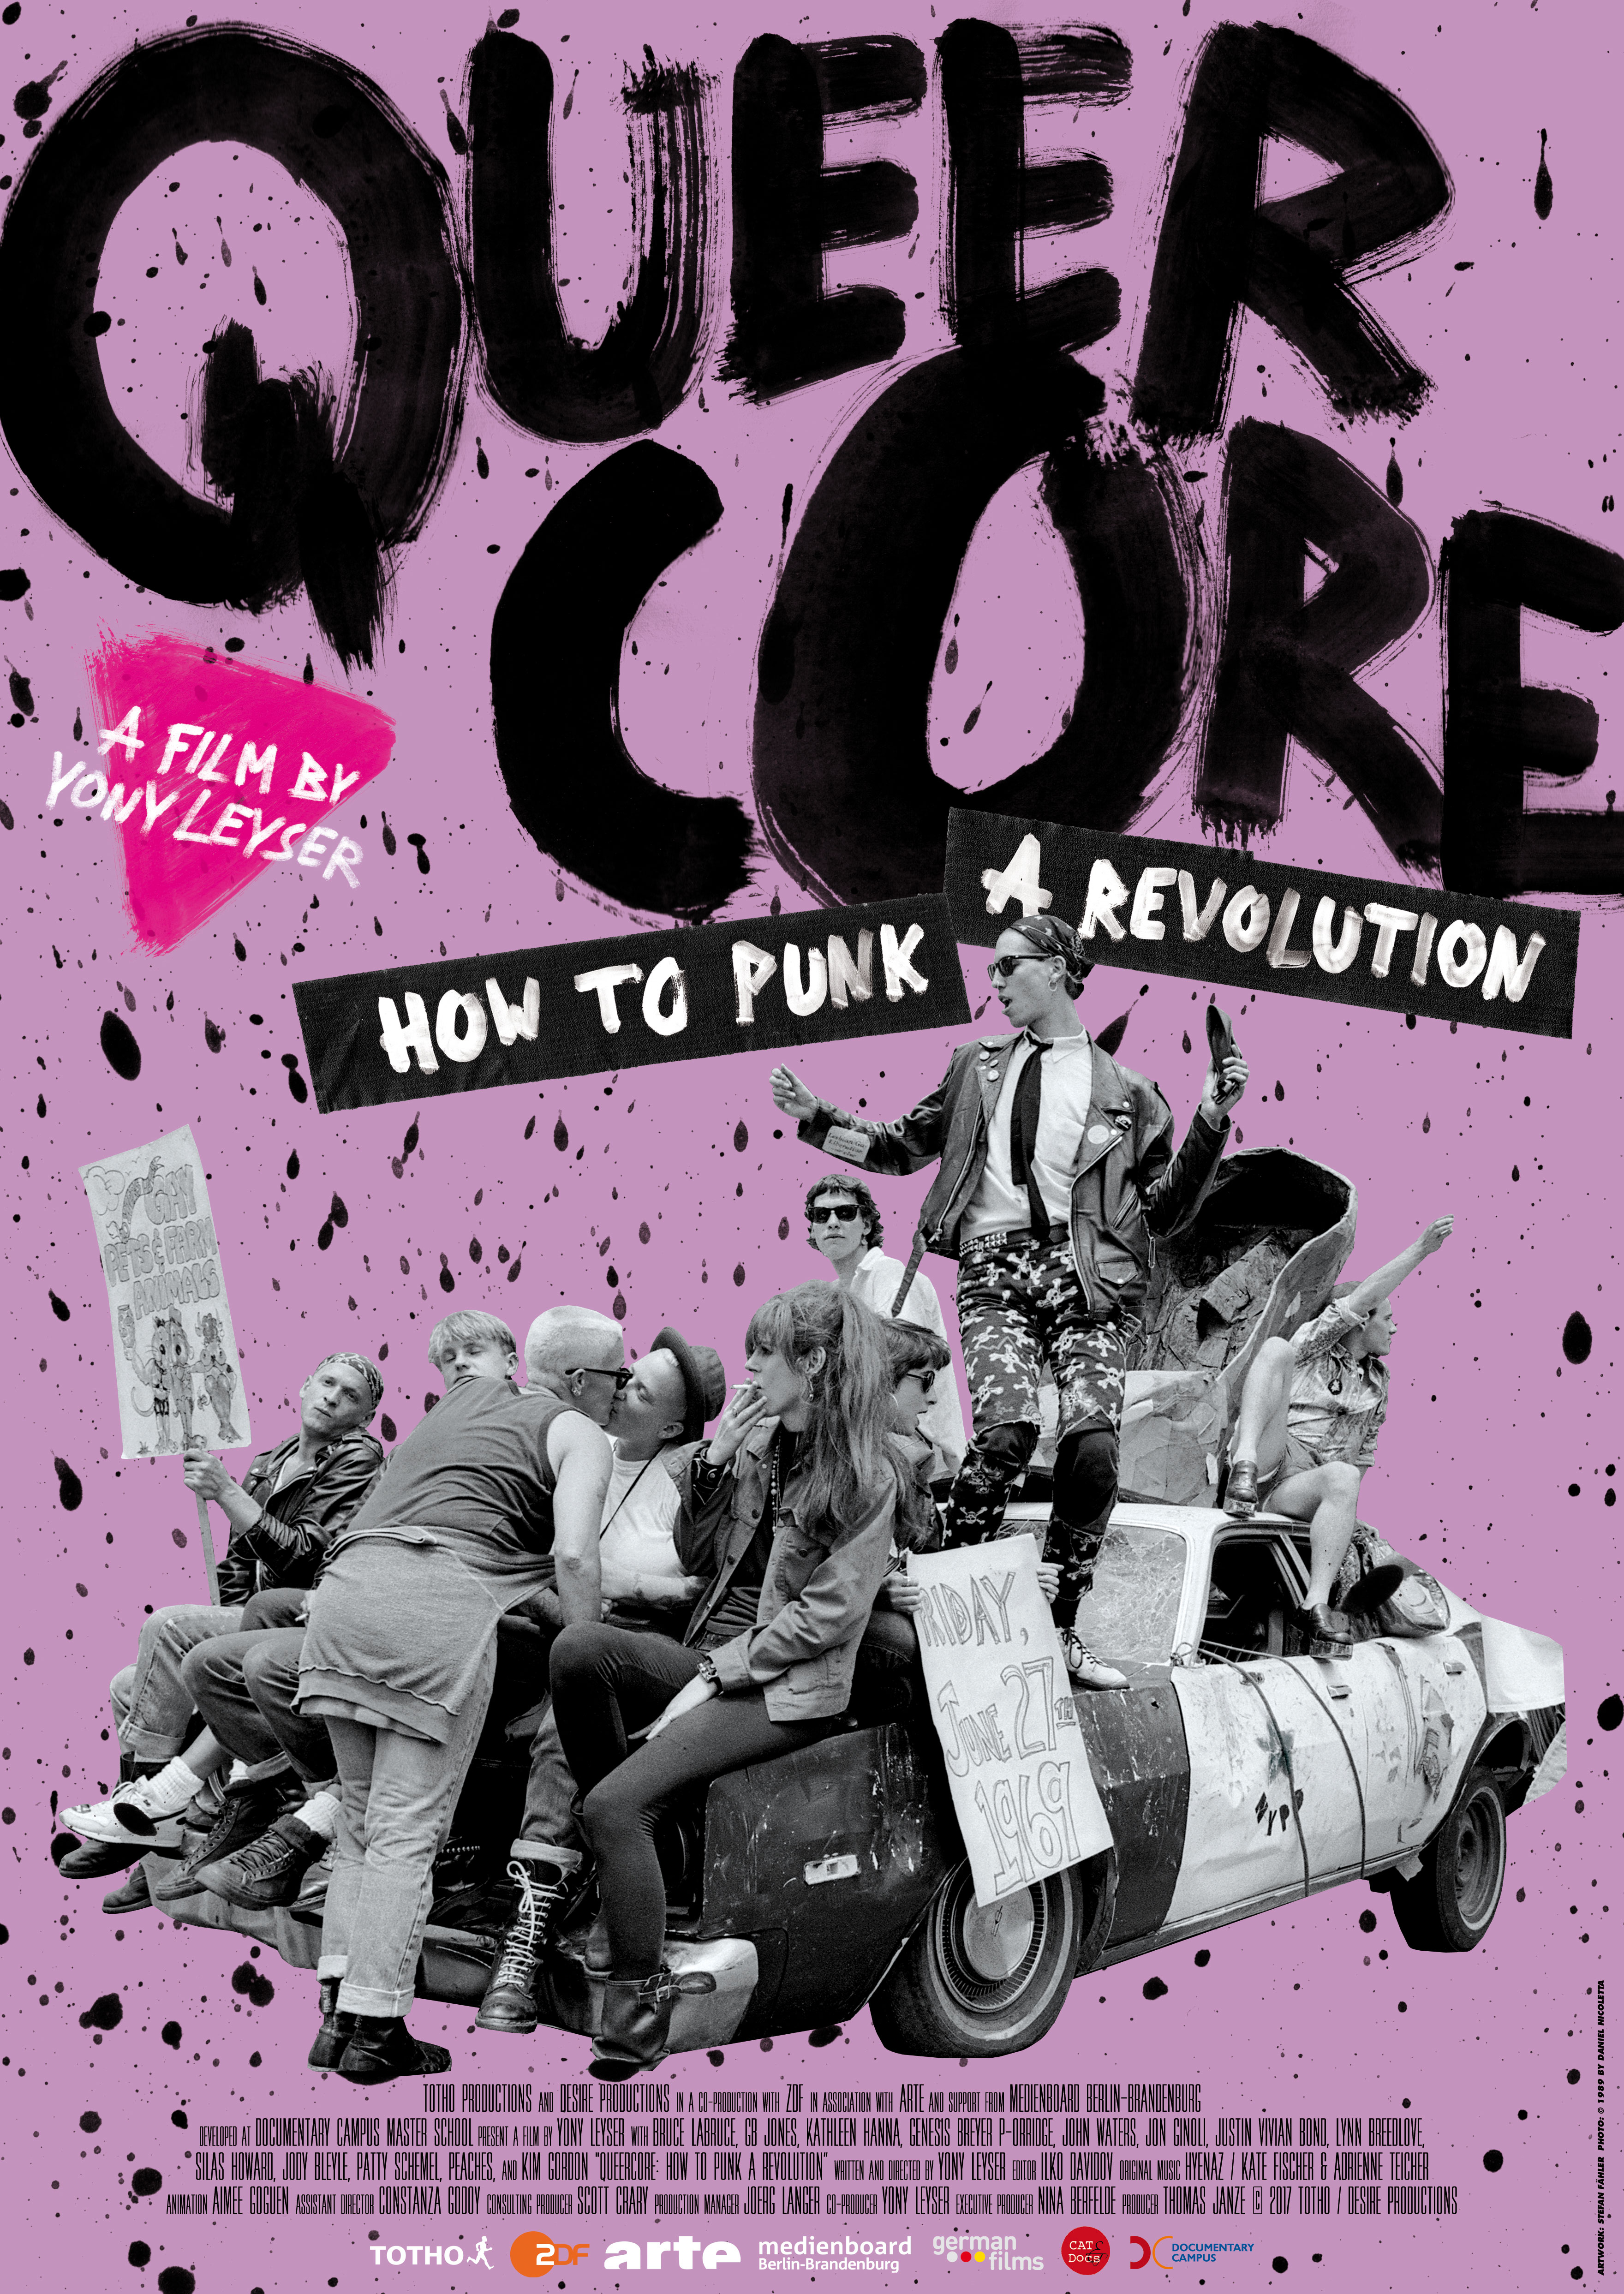 The history of the Queercore movement and its cultural response with special focus on its music (Peaches, Gossip, etc.)